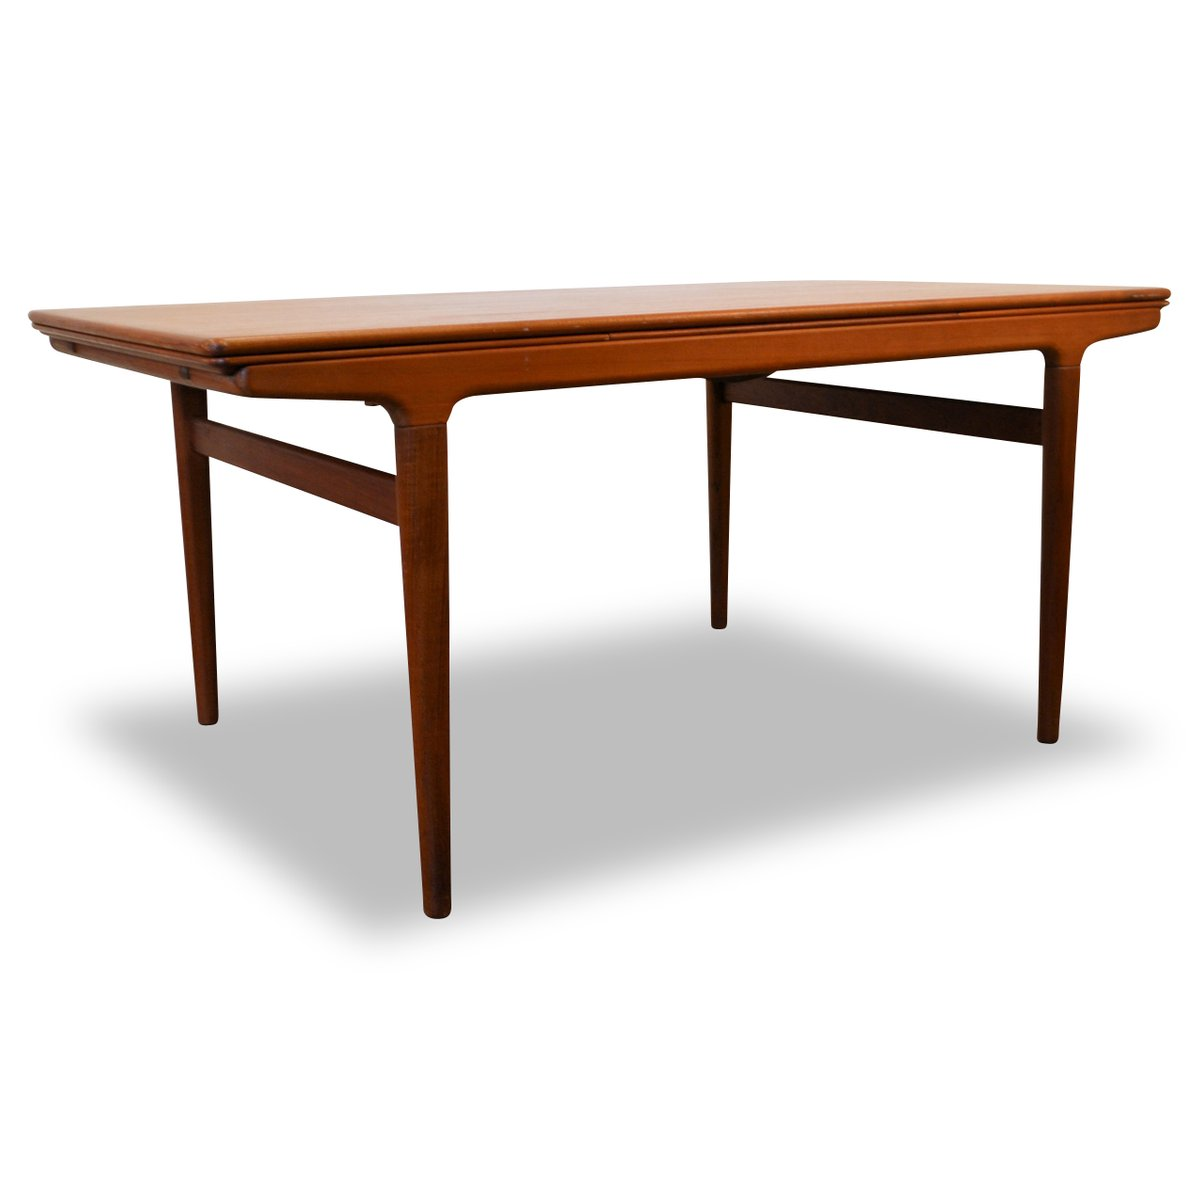 Table de salle manger extensible vintage en teck par for Table salle manger extensible